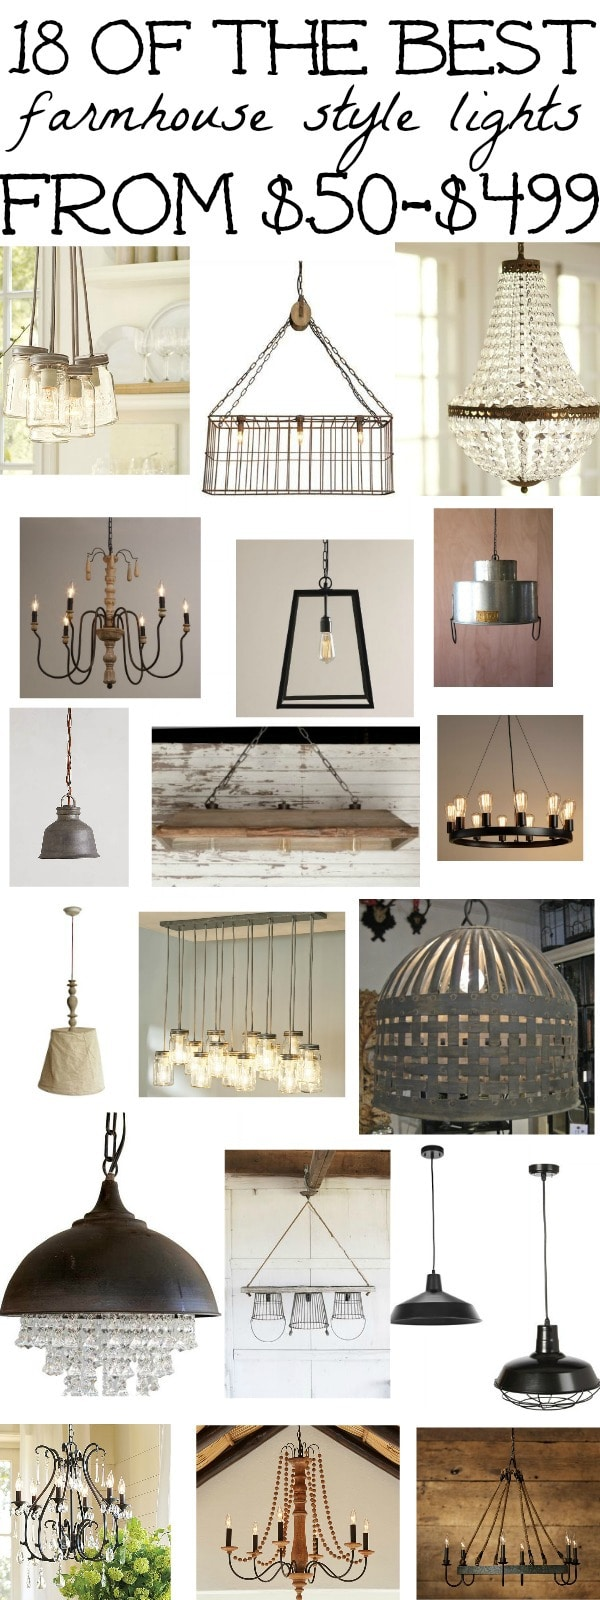 18 of the best farmhouse light fixtures - a must pin for farmhouse light fixtures & farmhouse inspiration.